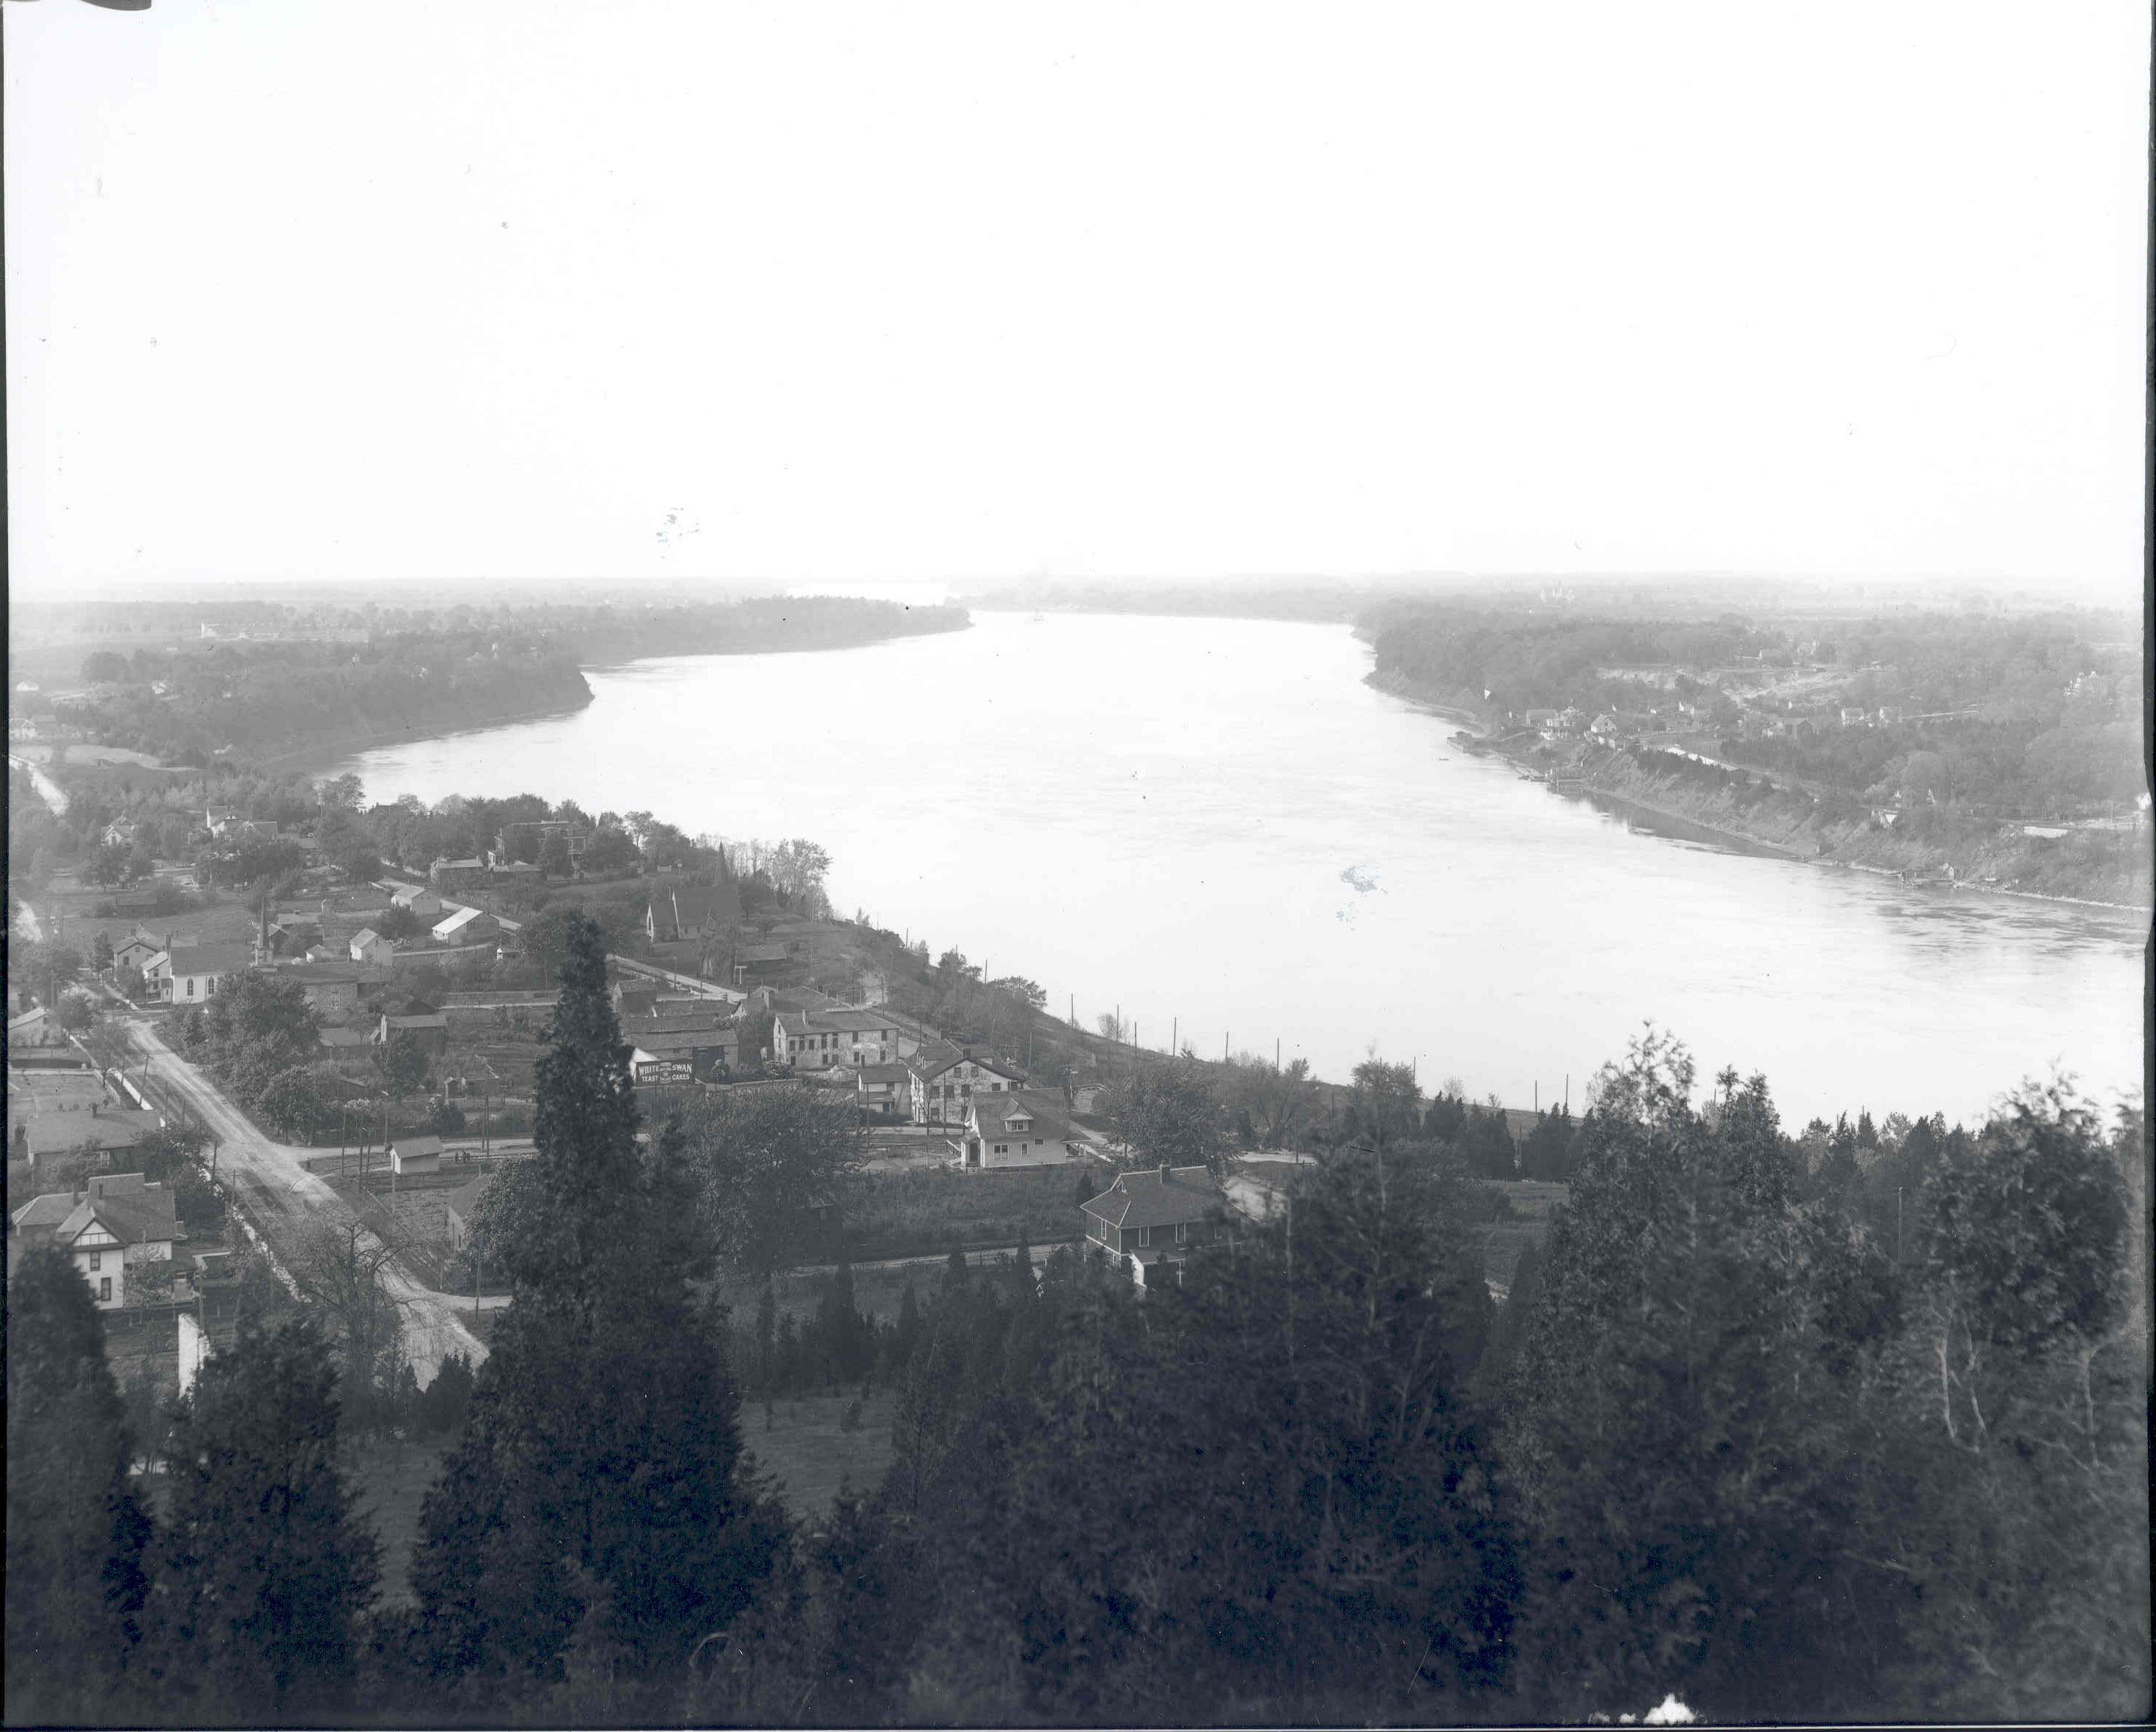 General View North from Brock's Monument / Queenston / Upper Niagara River (image/jpeg)